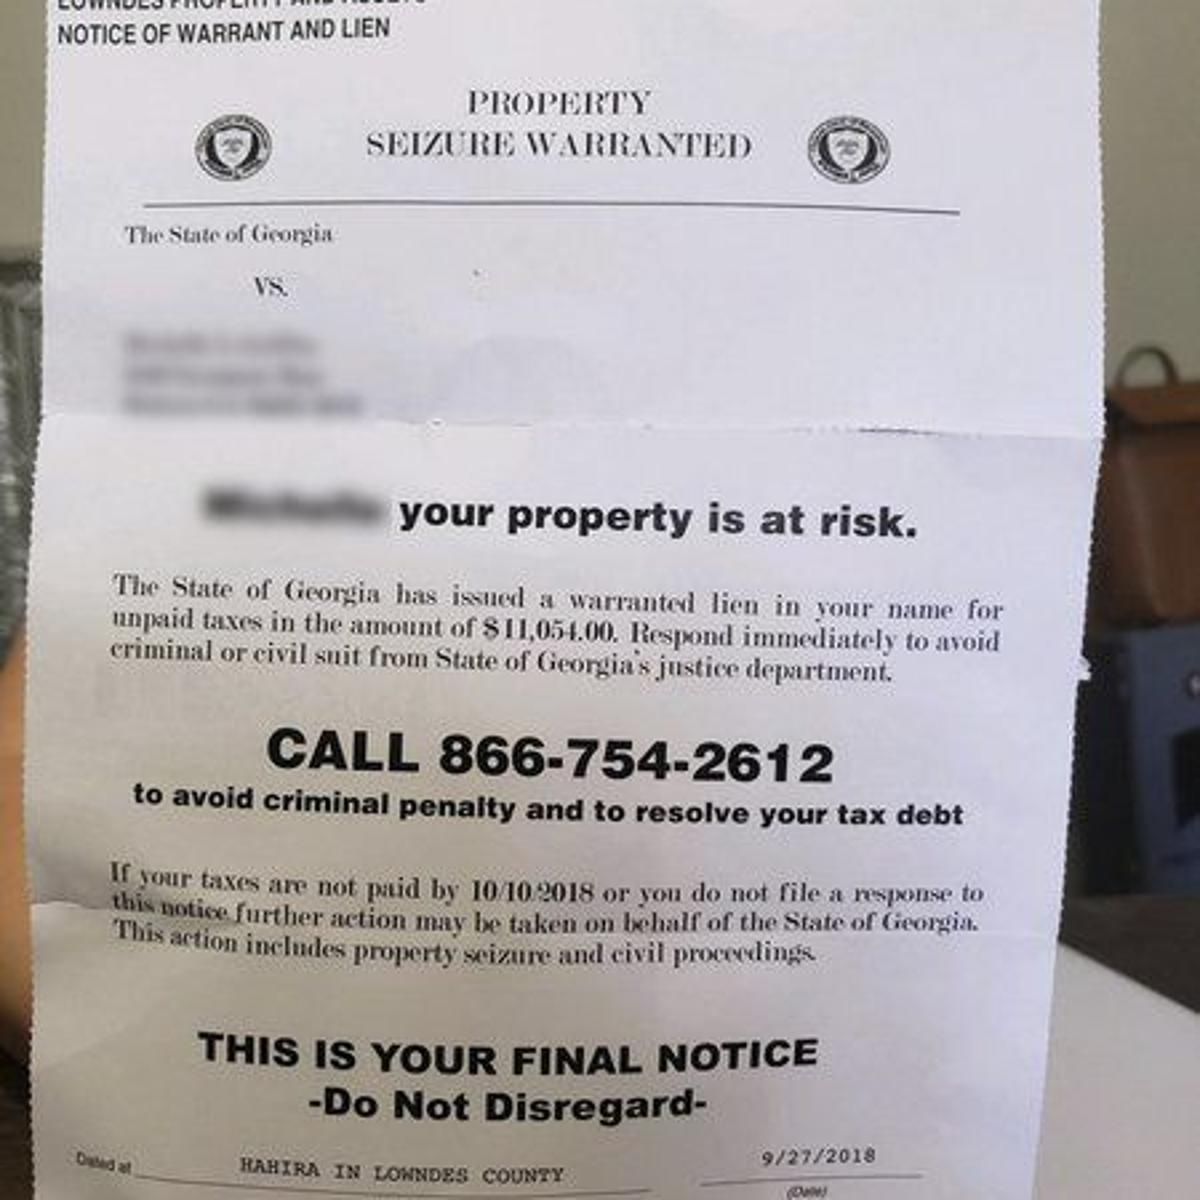 Tax commissioner: Beware phony letters | Local News